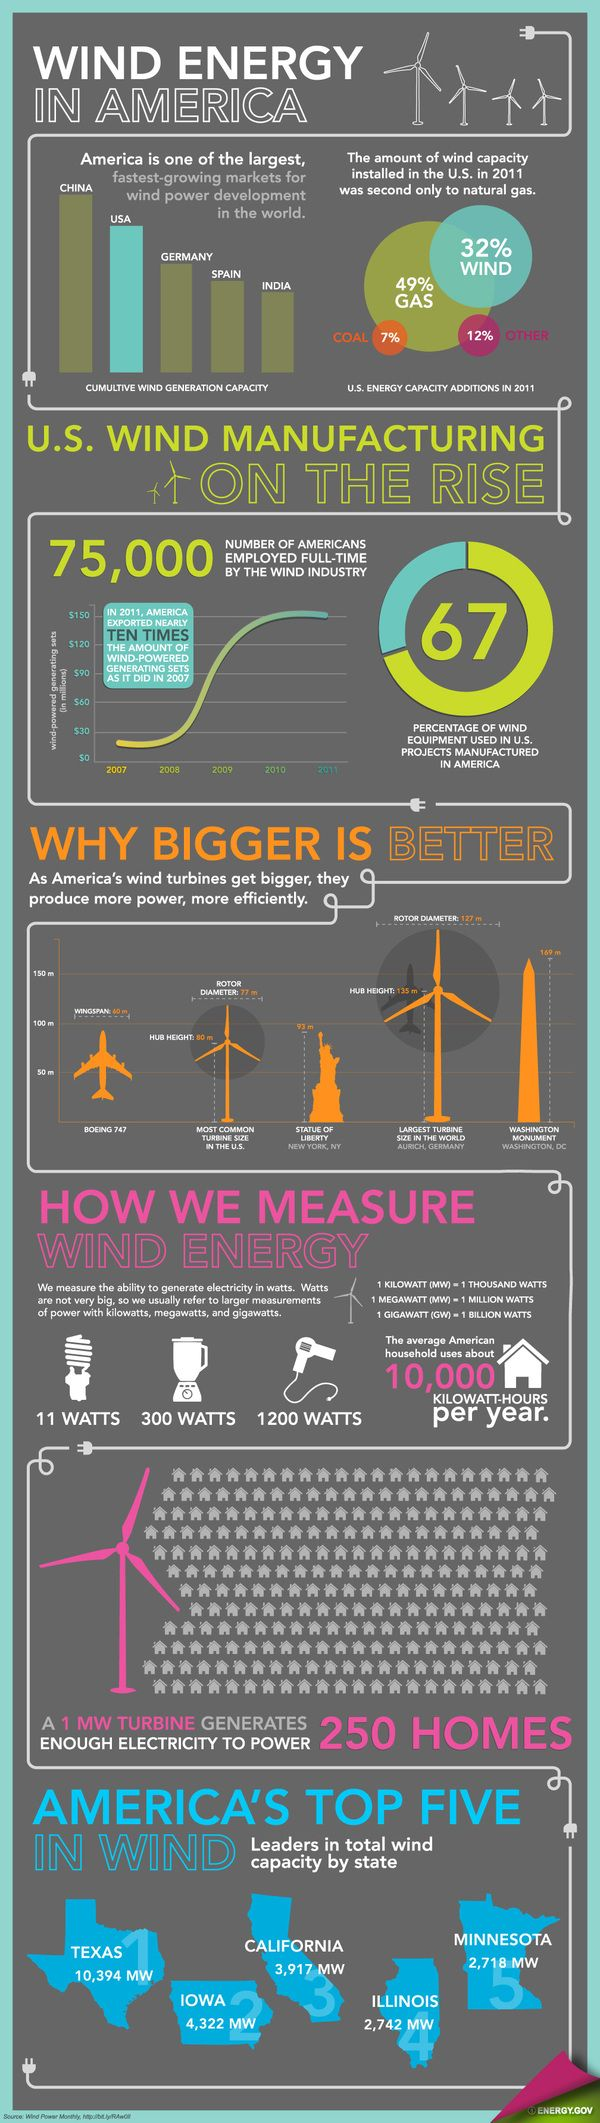 Wind Energy in America   Visit our new infographic gallery at visualoop.com/